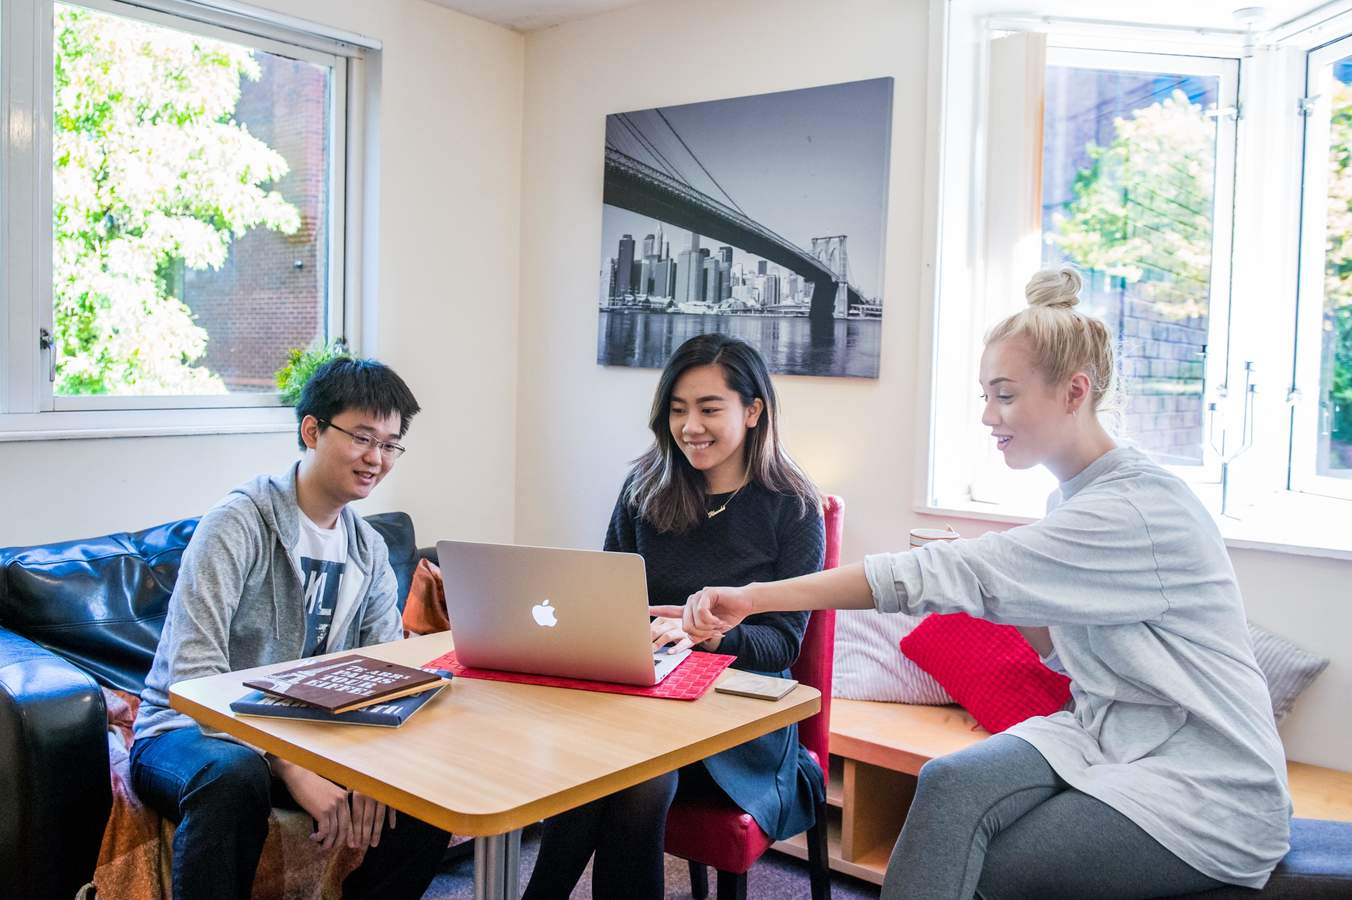 Cc_-_lounge_with_students_04_(low_res)